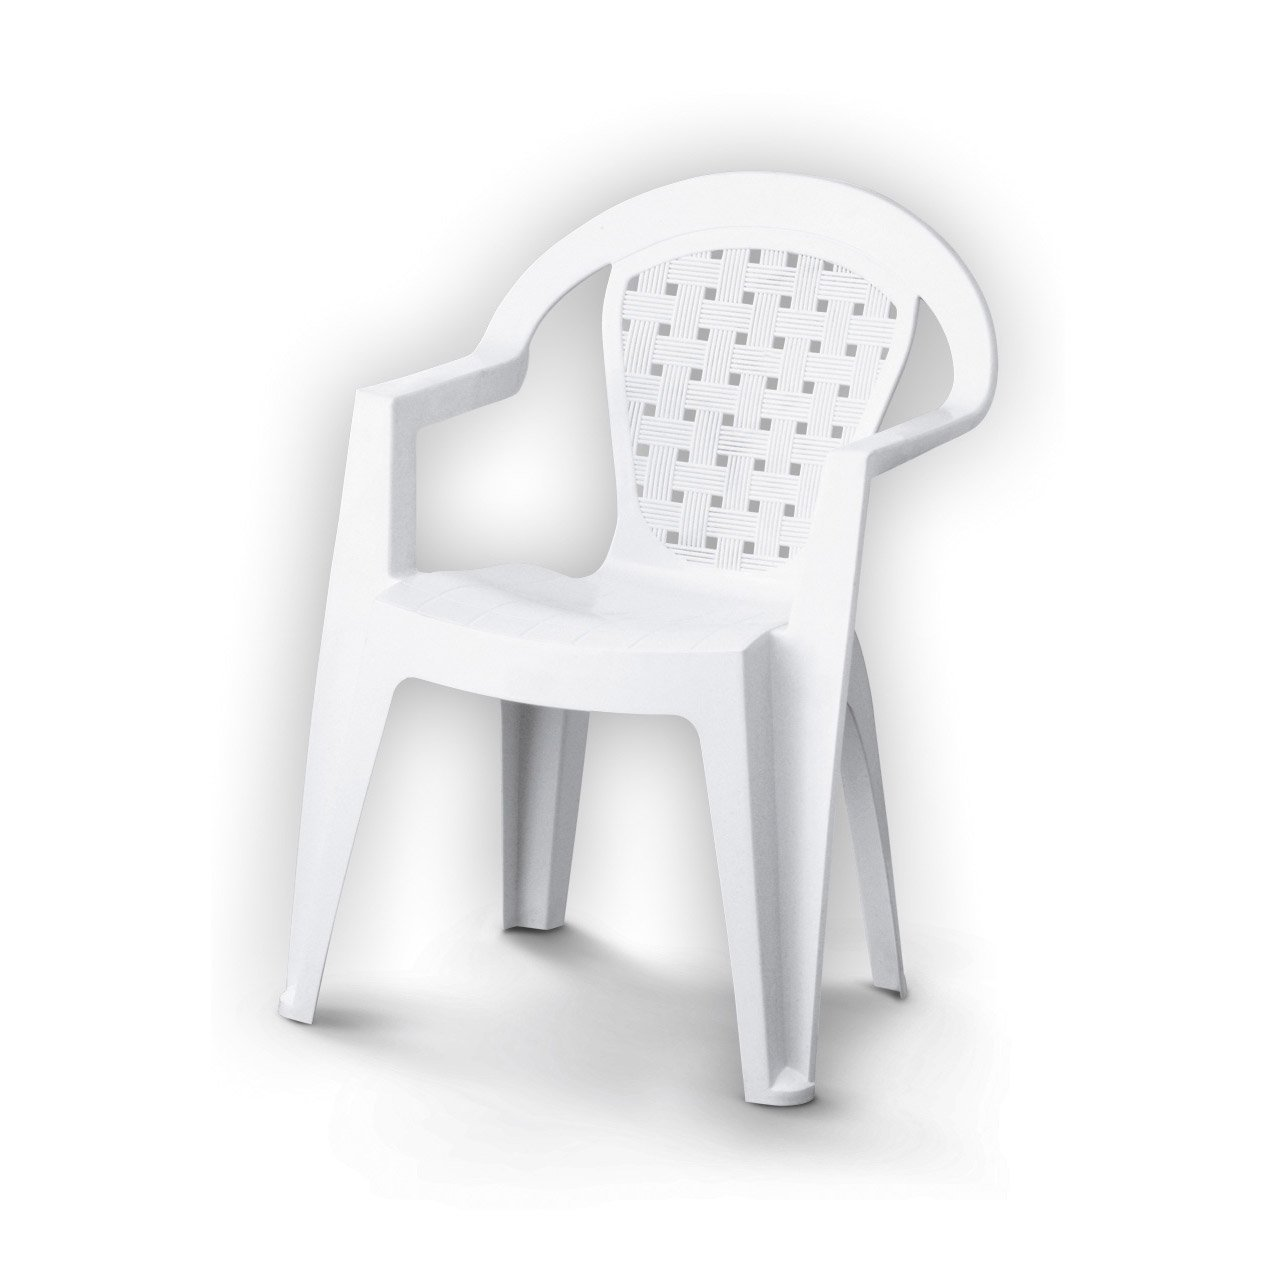 Chaise plastique blanche design id es de d coration for Chaise blanche plastique